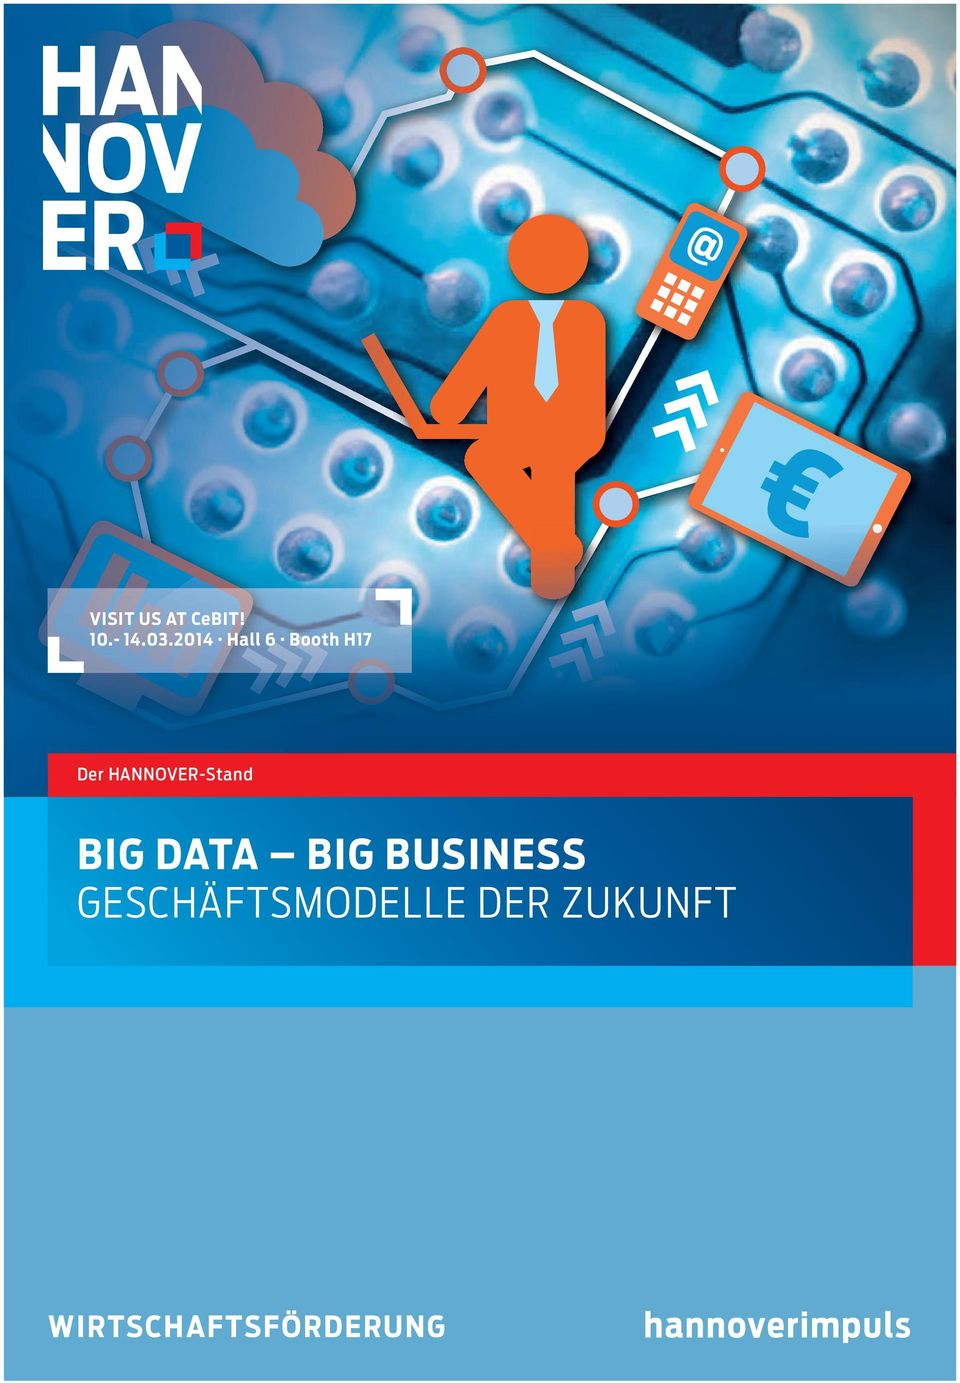 HANNOVER-Stand BIG DATA BIG BUSINESS